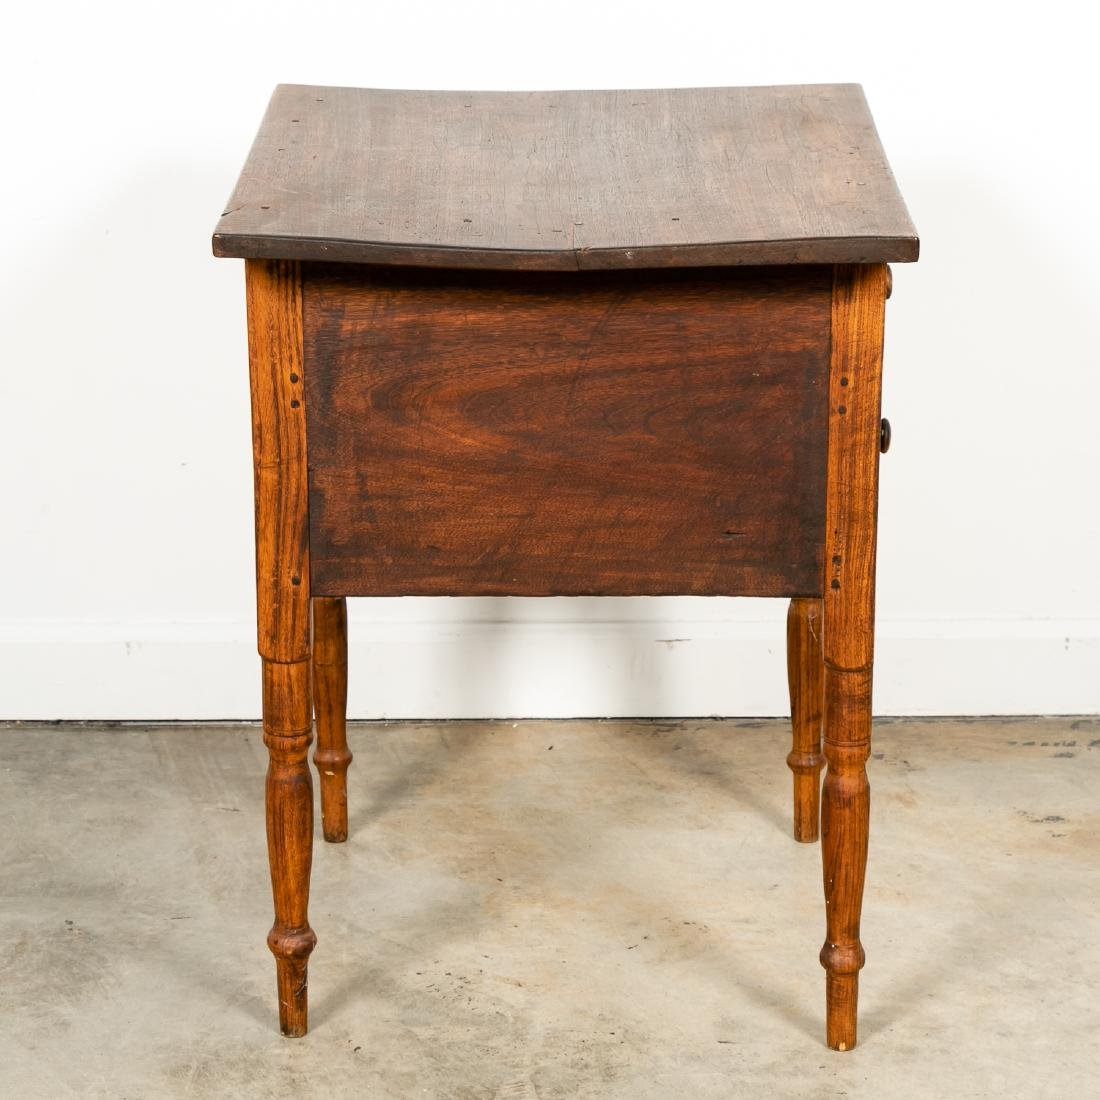 Early American Country Oak SideTable - 3